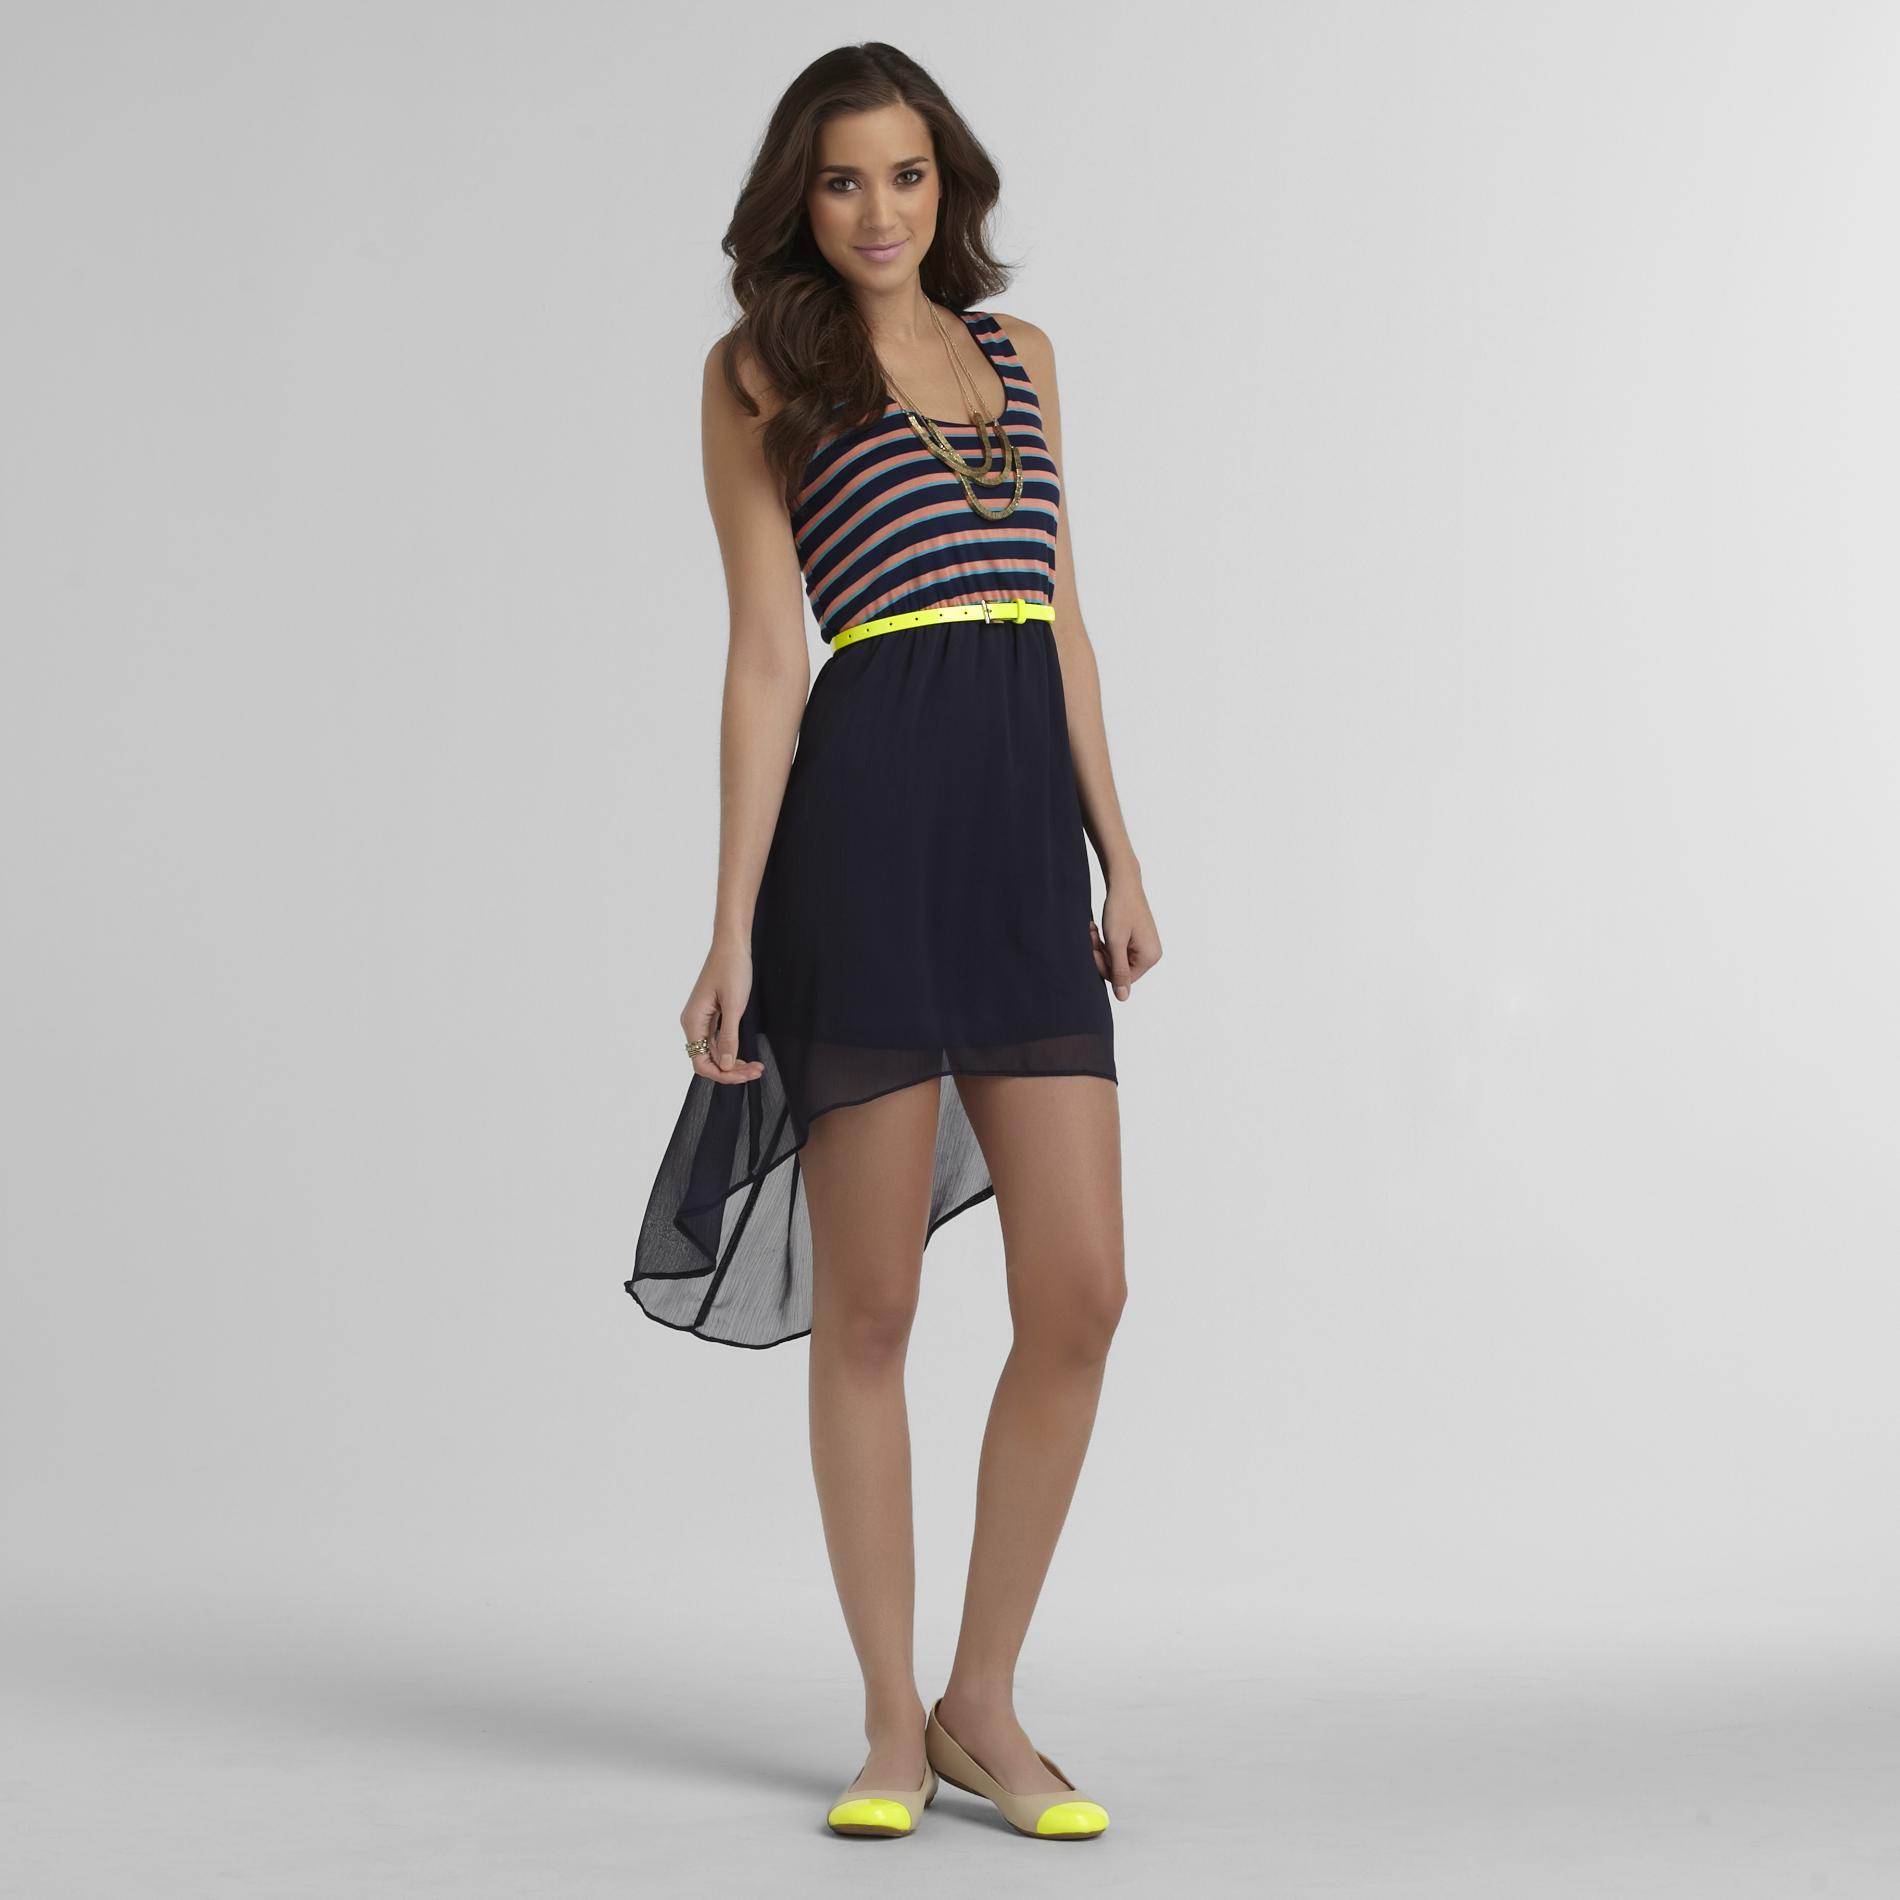 Rhapsody Junior's High-Low Tank Top Dress - Striped at Sears.com